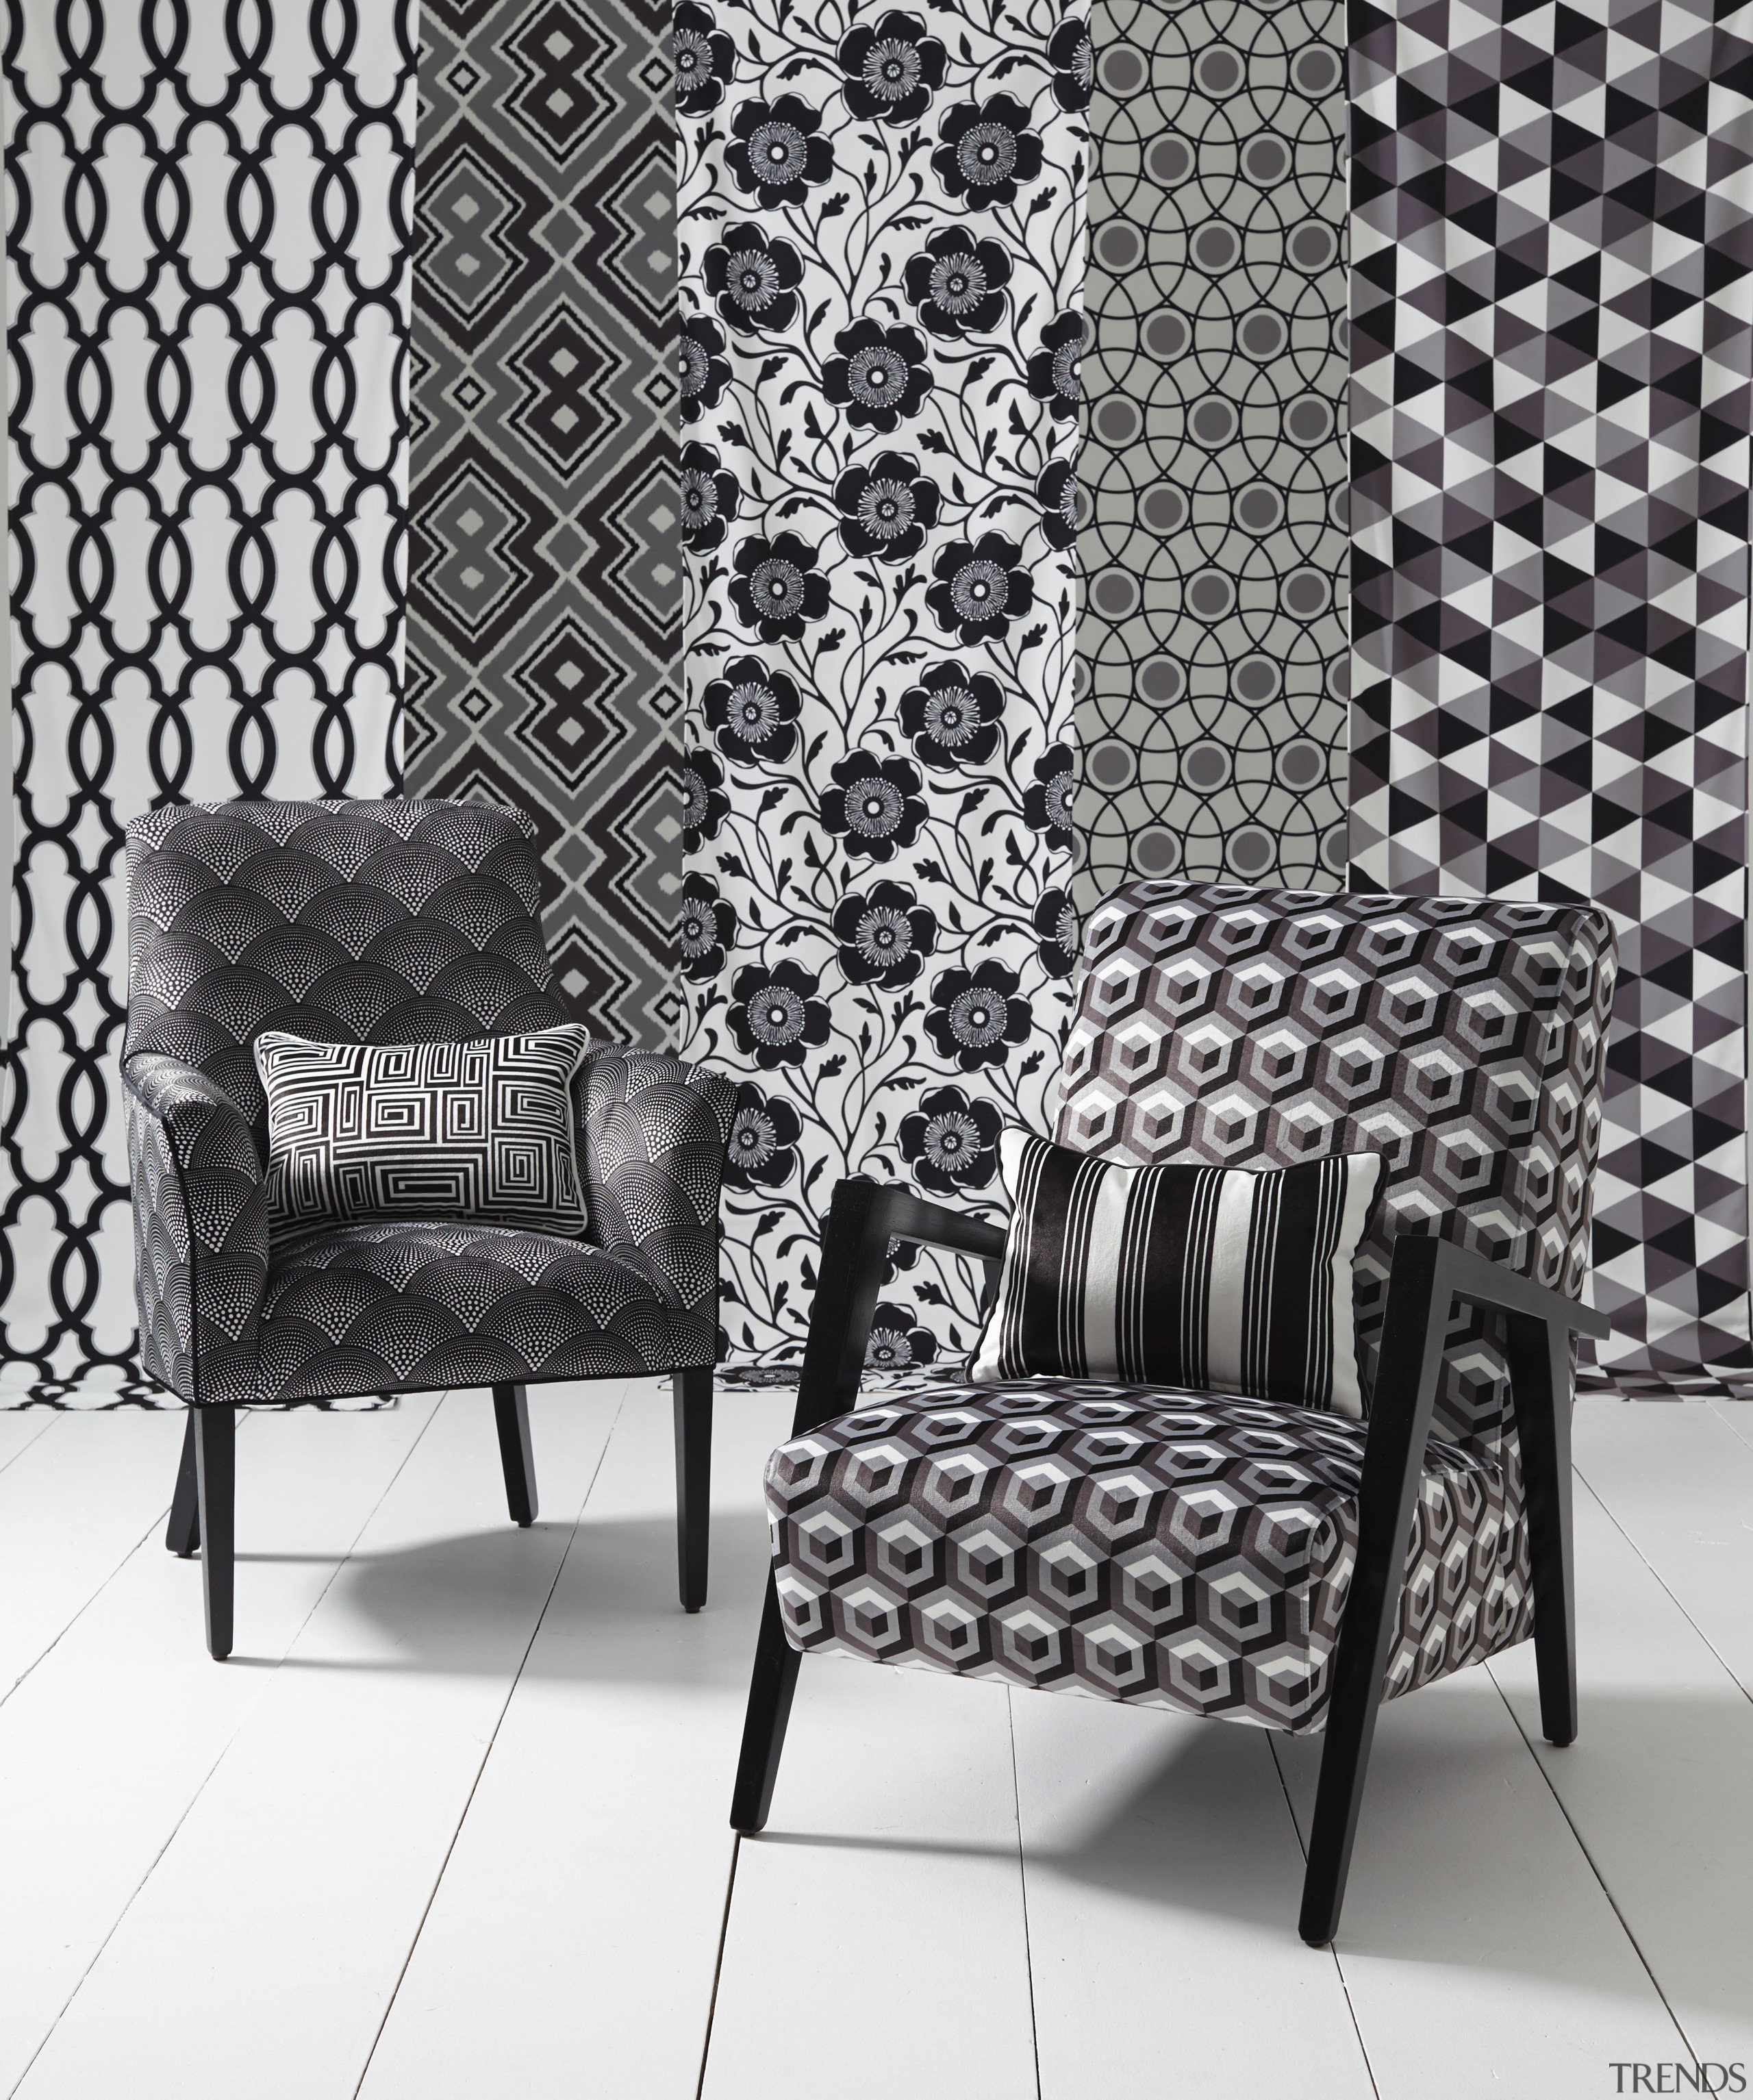 In modern commercial interiors, an eye-catching furnishing scheme black, black and white, chair, couch, design, furniture, interior design, living room, monochrome, monochrome photography, pattern, wall, wallpaper, white, black, gray